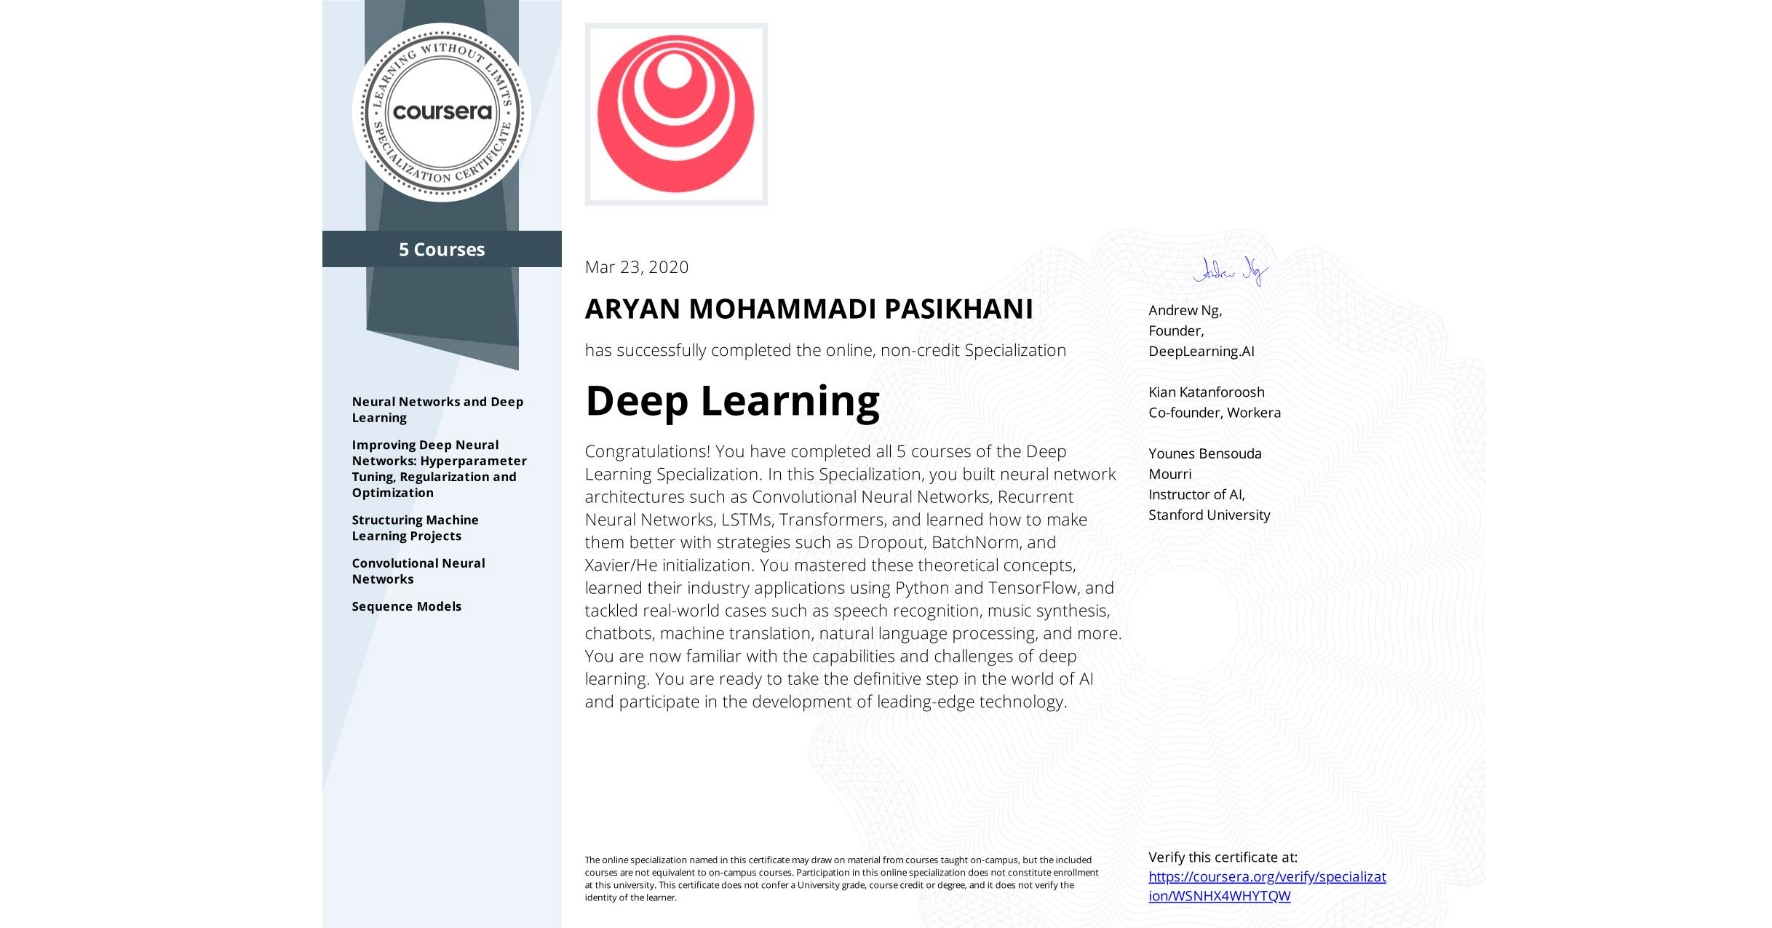 View certificate for ARYAN MOHAMMADI PASIKHANI, Deep Learning, offered through Coursera. Congratulations! You have completed all five courses of the Deep Learning Specialization.  In this Specialization, you built neural network architectures such as Convolutional Neural Networks, Recurrent Neural Networks, LSTMs, Transformers and learned how to make them better with strategies such as Dropout, BatchNorm, Xavier/He initialization, and more. You mastered these theoretical concepts and their application using Python and TensorFlow and also tackled real-world case studies such as autonomous driving, sign language reading, music generation, computer vision, speech recognition, and natural language processing.   You're now familiar with the capabilities, challenges, and consequences of deep learning and are ready to participate in the development of leading-edge AI technology.